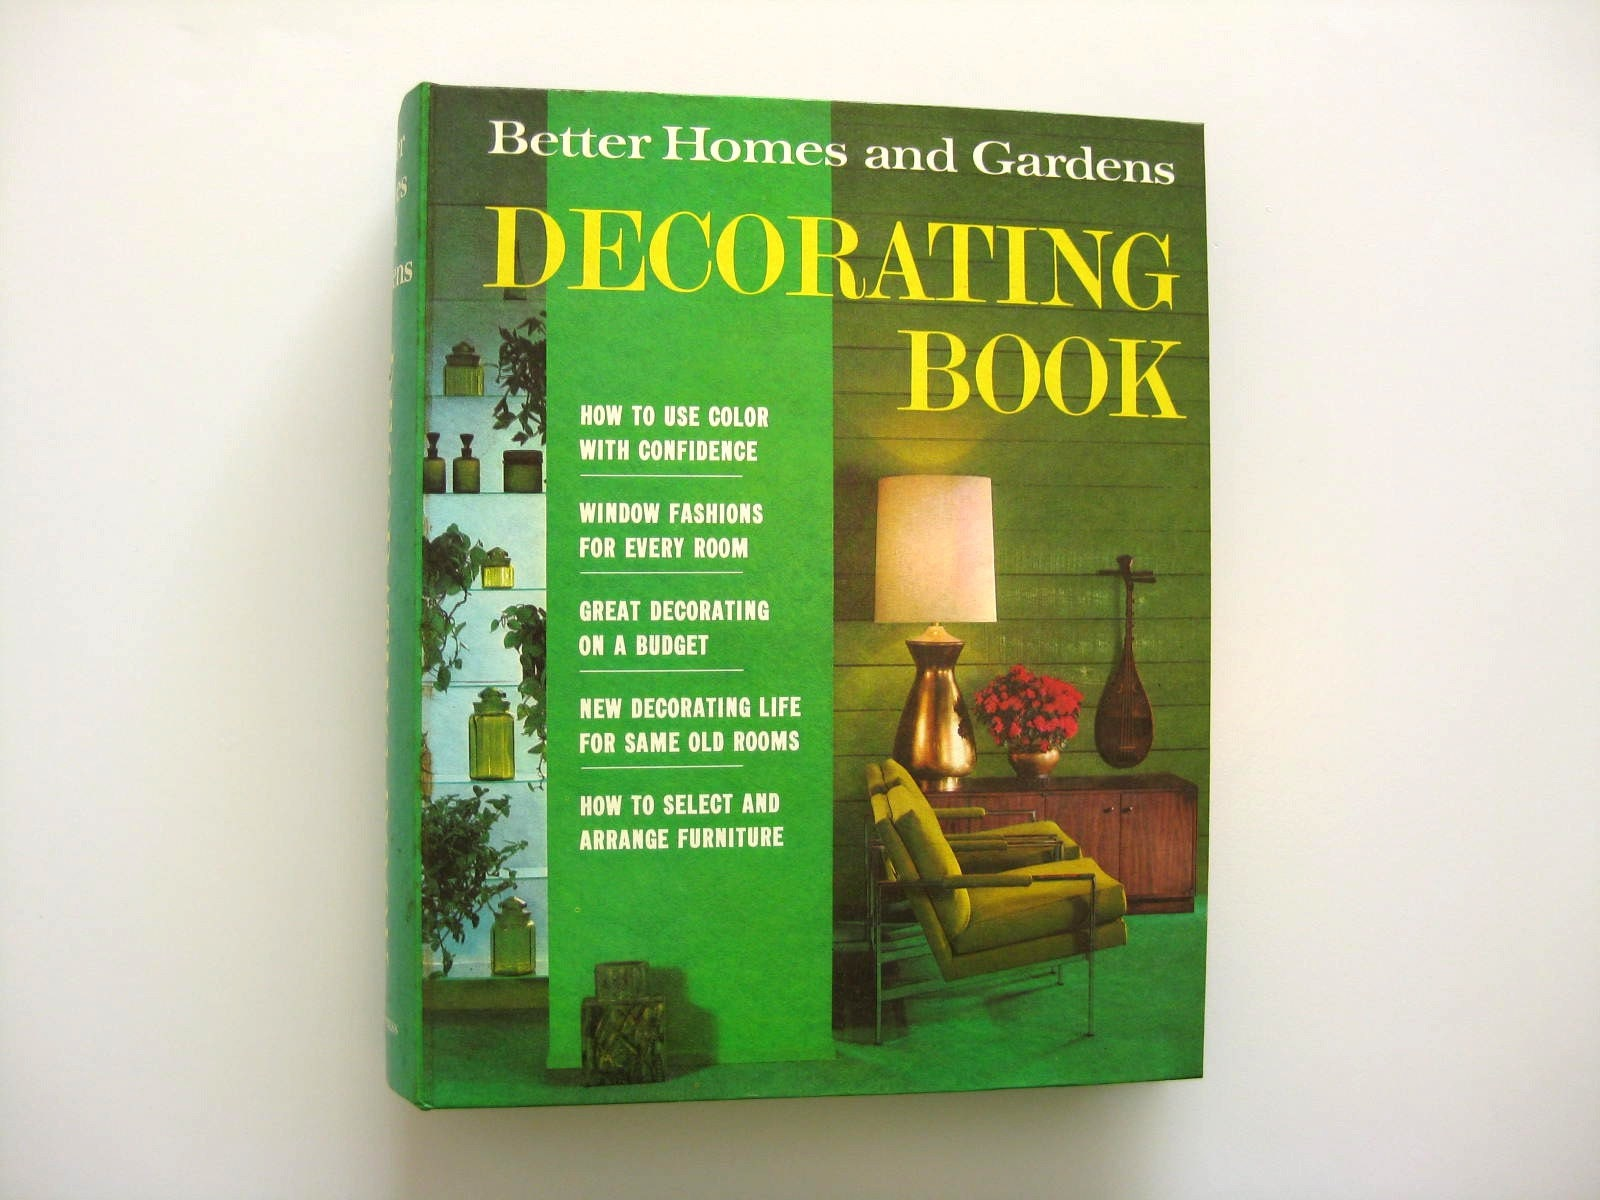 1968 better homes and gardens decorating book great - Better homes and gardens cookbook 1968 ...